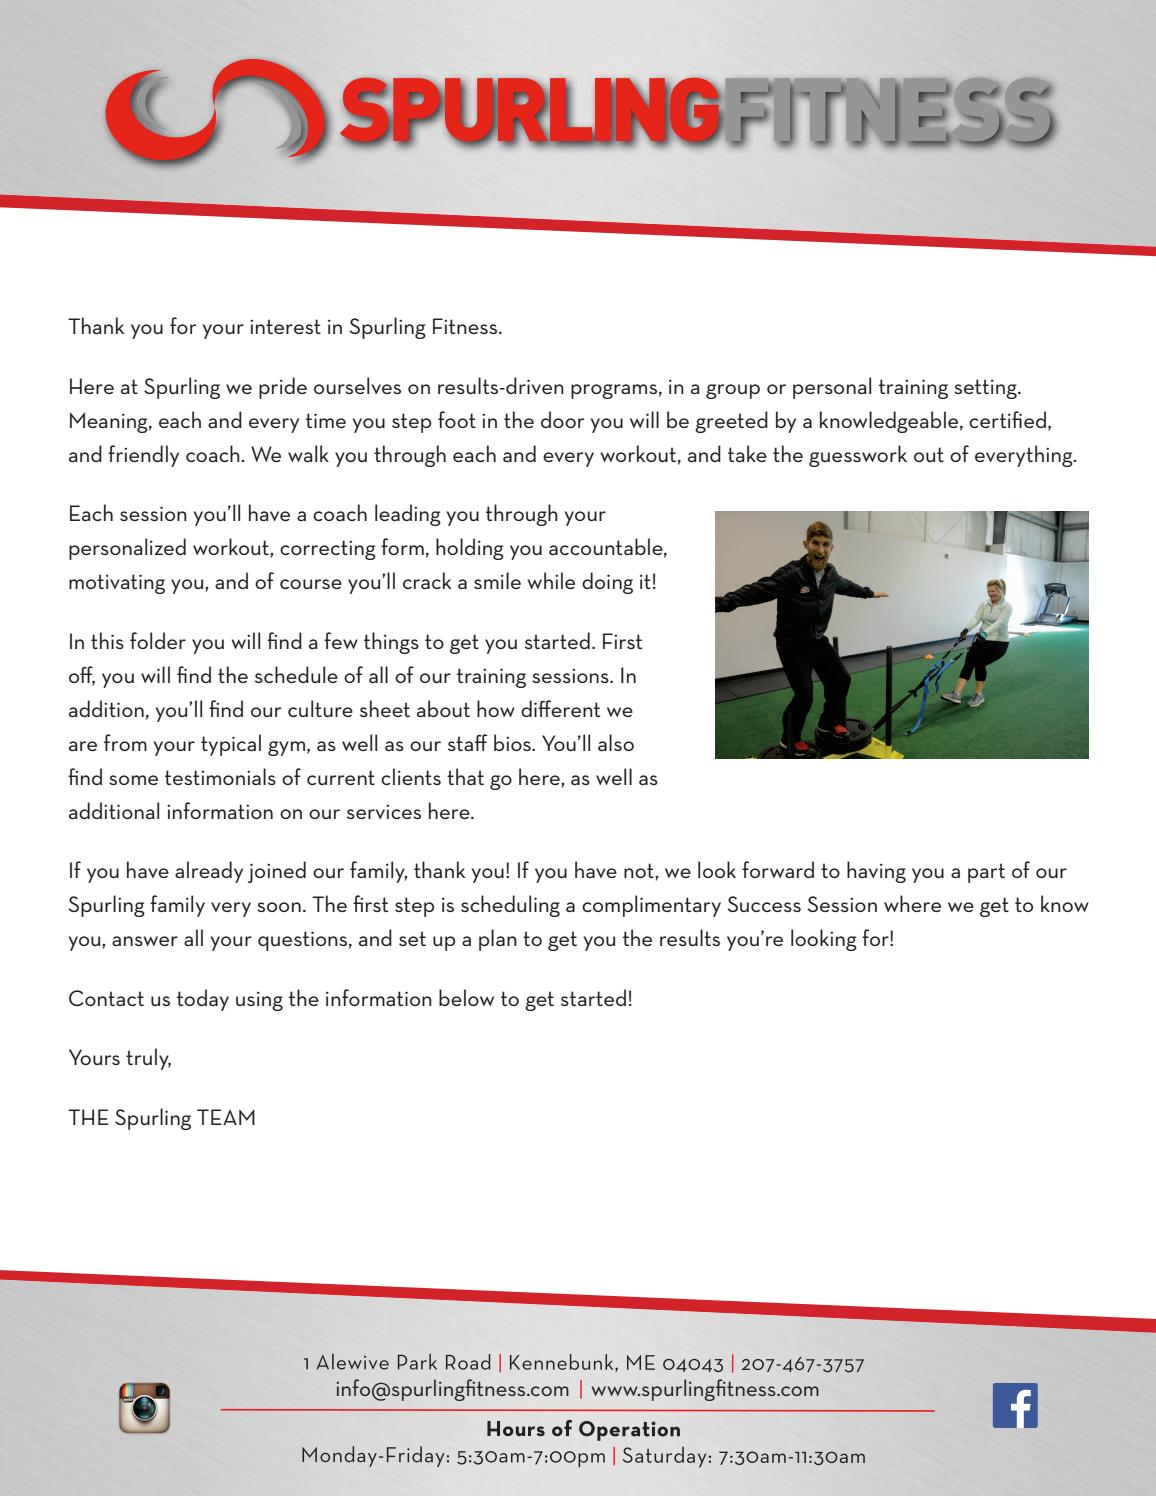 Spurling Fitness Welcome Packet By Spurling Fitness Issuu